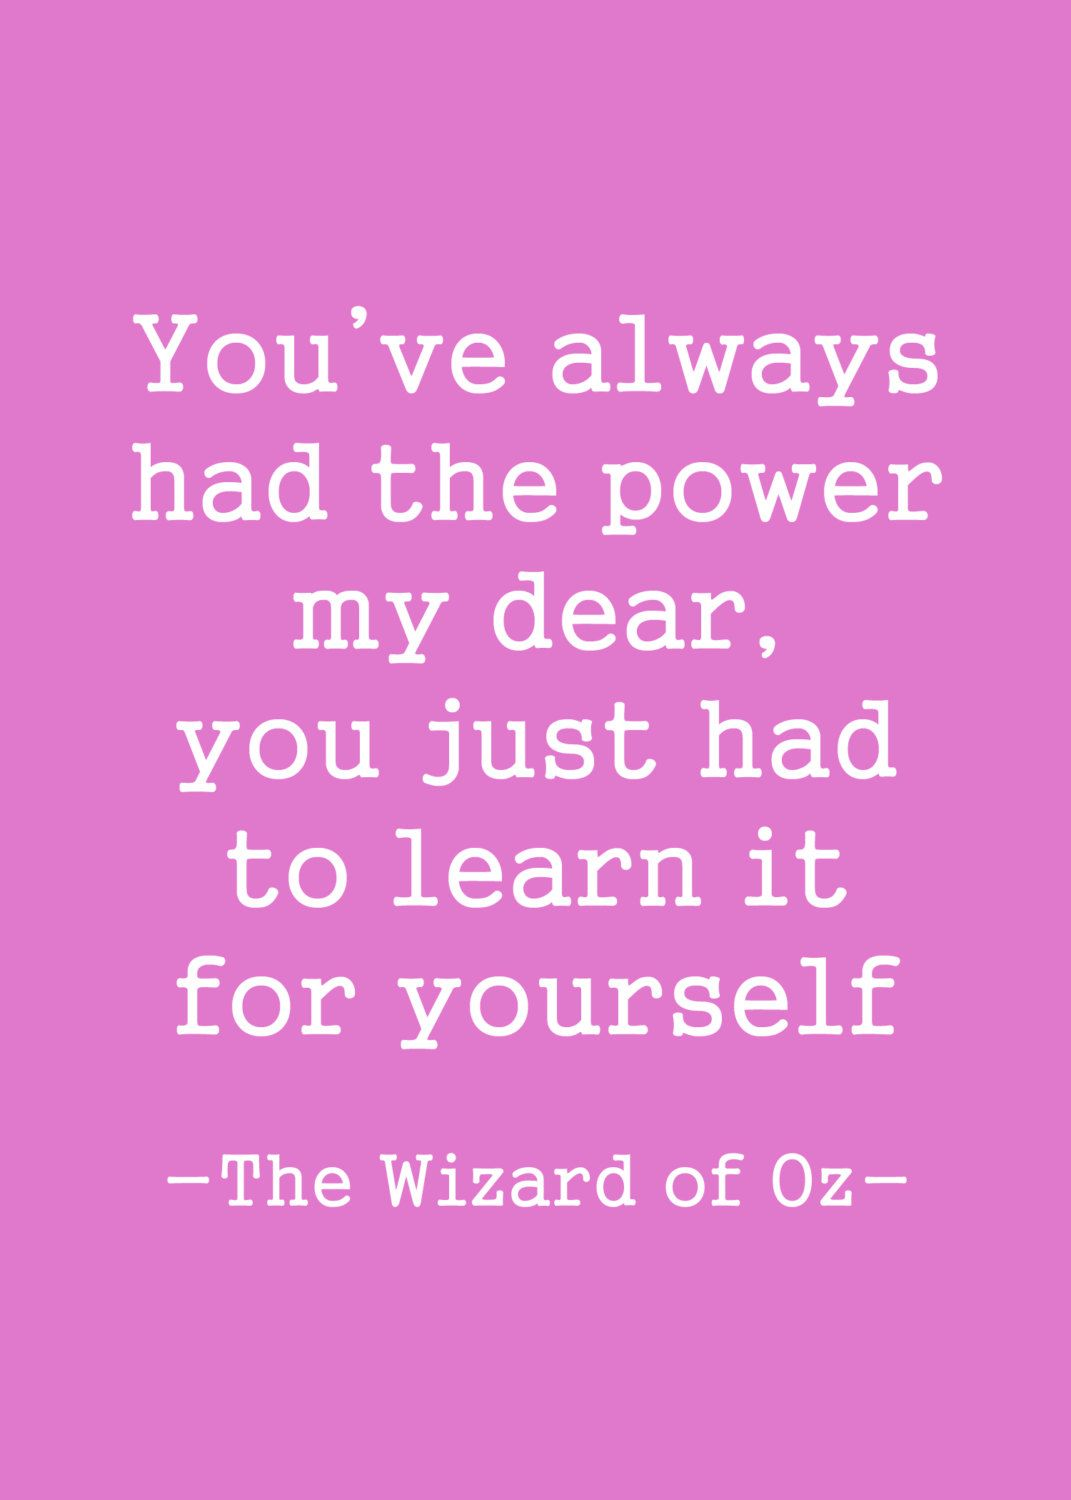 New To Serendipitycreate On Etsy Wizard Of Oz Quote Printable You